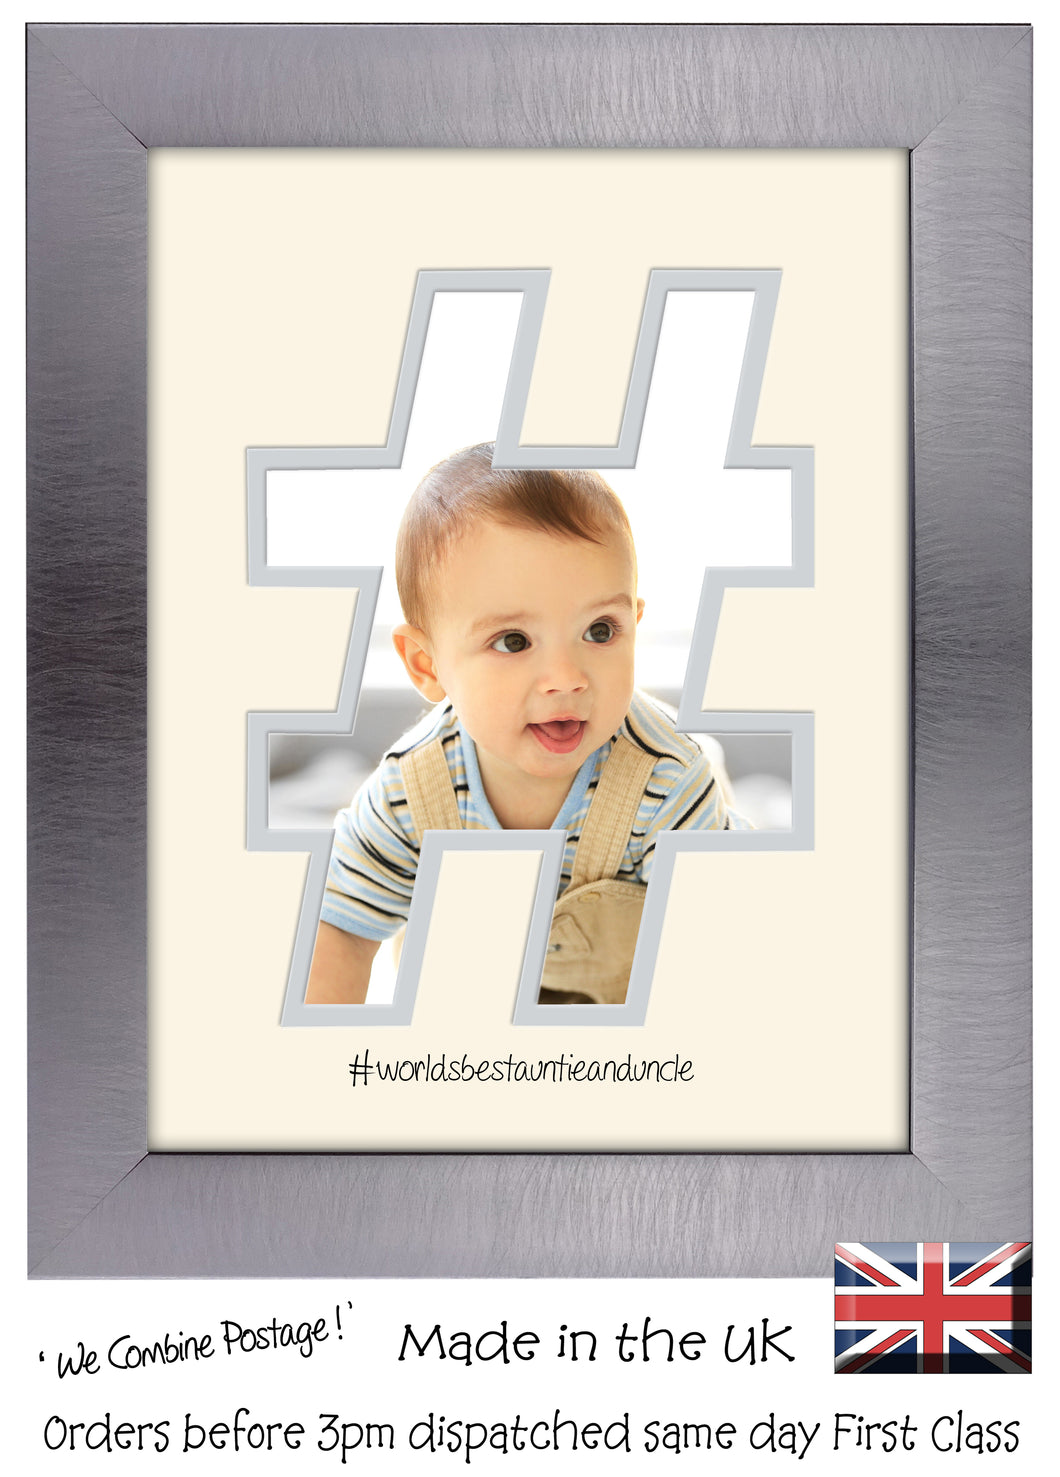 Auntie and Uncle Photo Frame World's Best Auntie and Uncle Hashtag photo frame 6